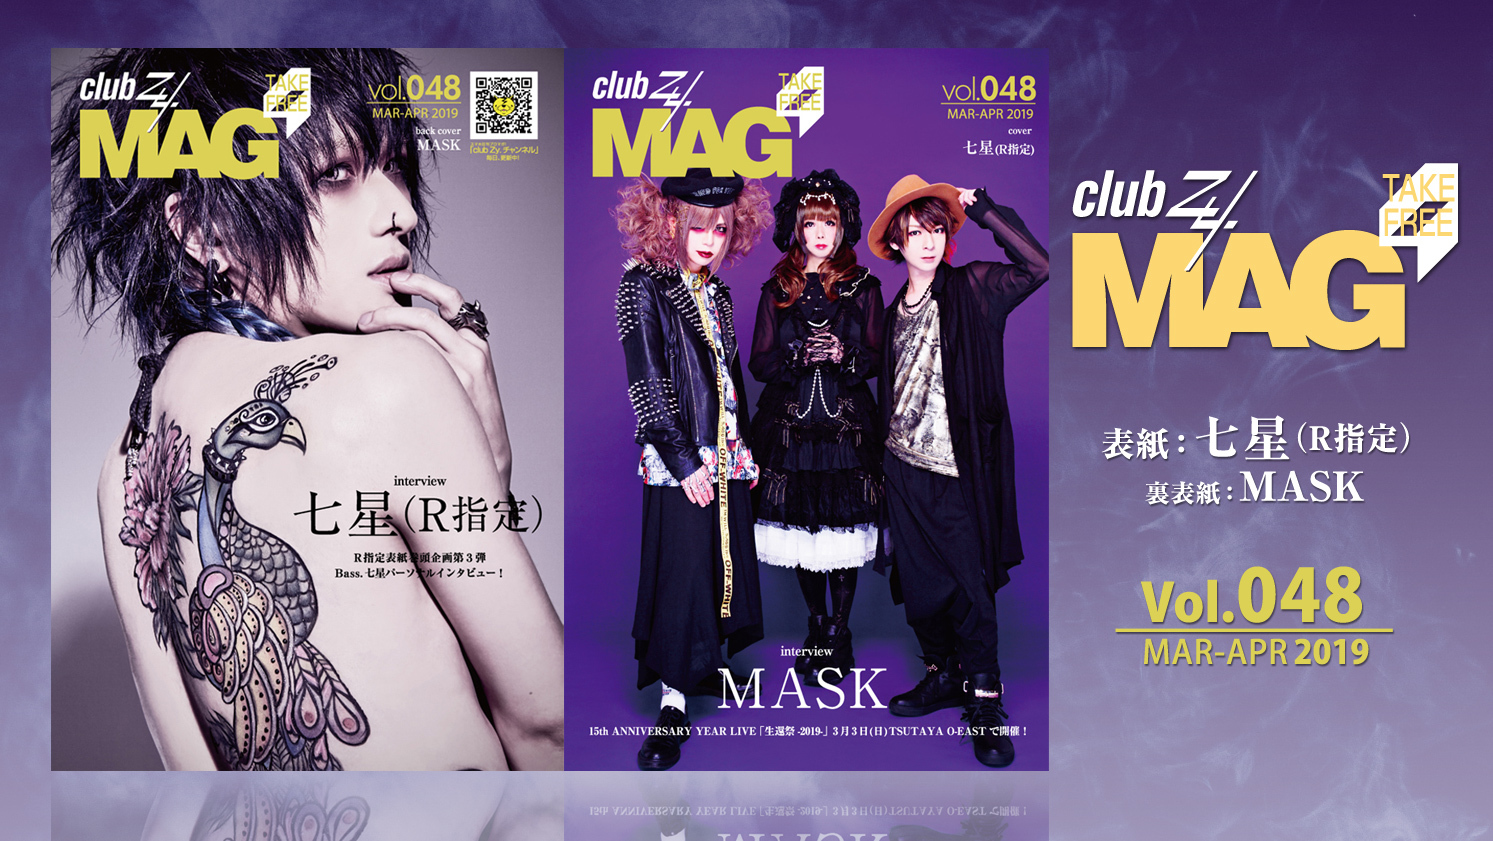 トップバナー【club Zy.MAG vol.048】